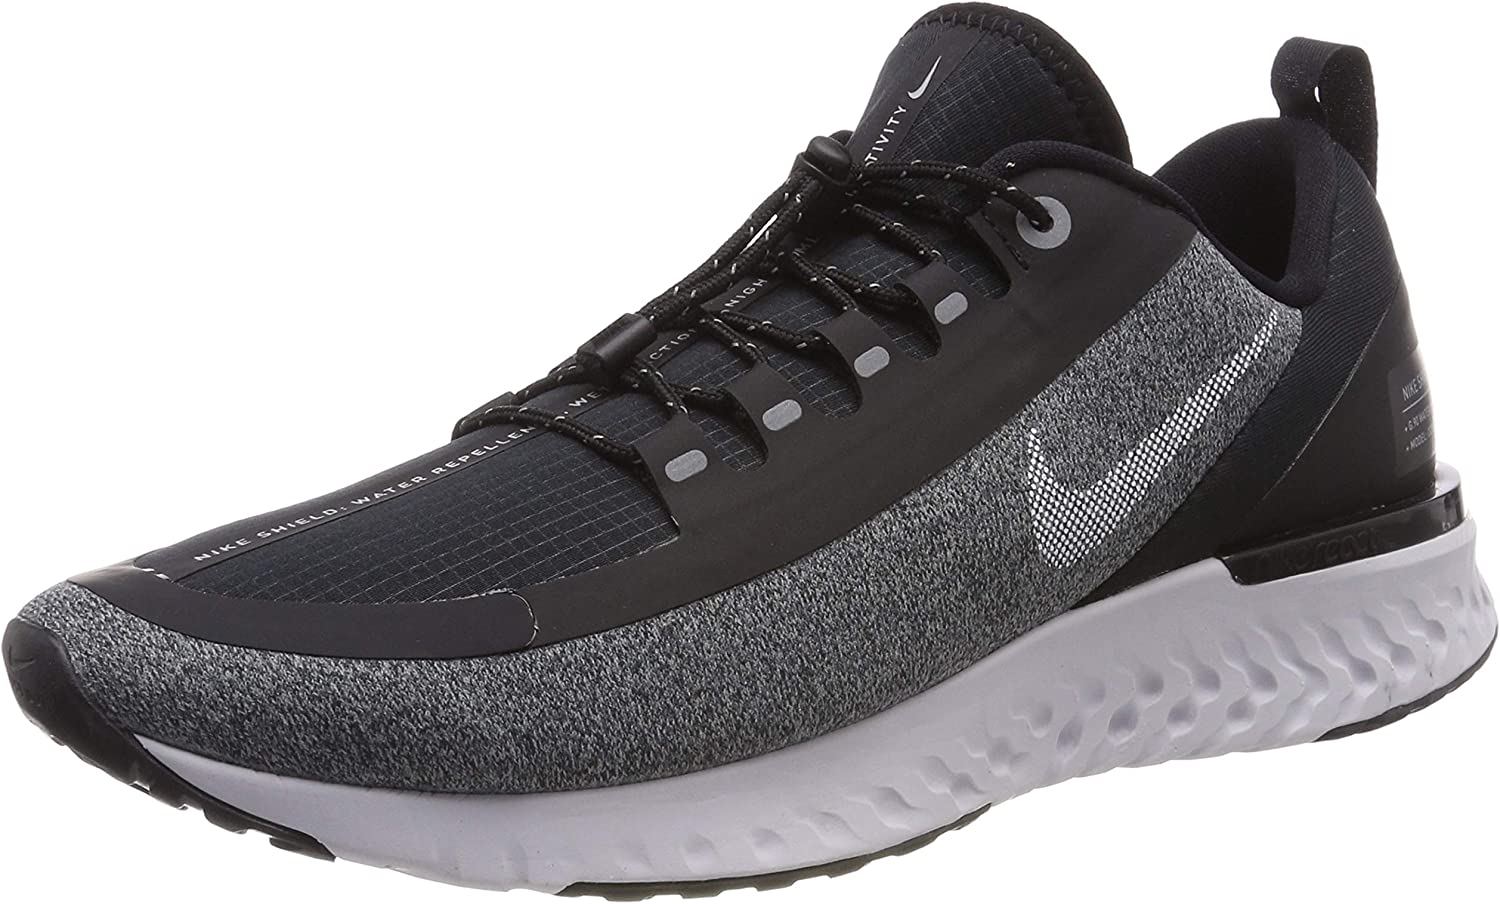 Nike Damen WMNS Odyssey React Shield Laufschuhe, US damen